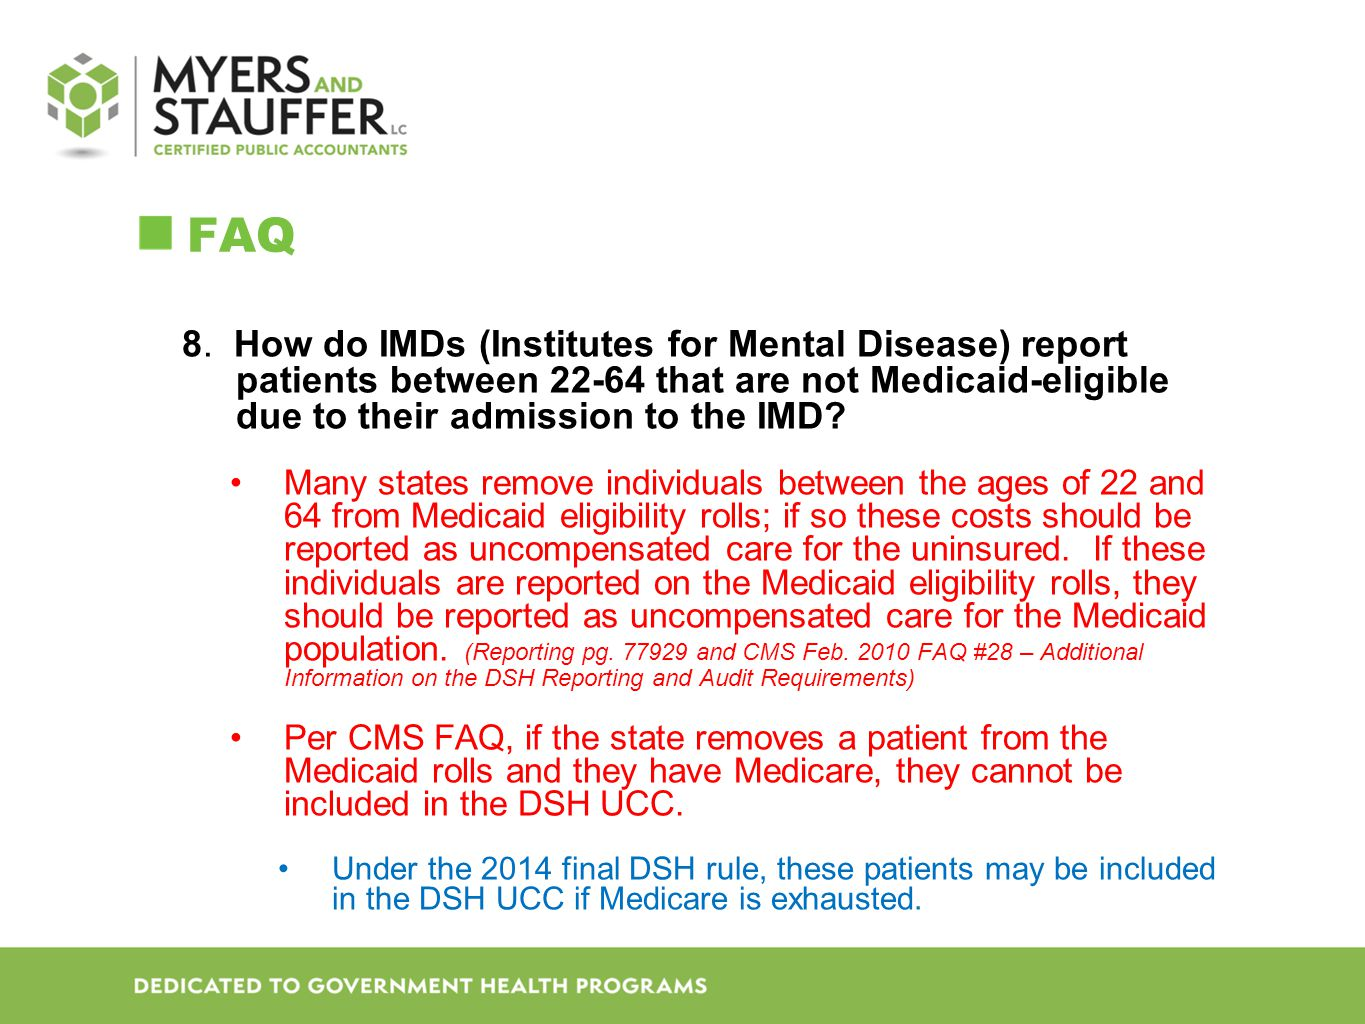 FAQ 8. How do IMDs (Institutes for Mental Disease) report patients between 22-64 that are not Medicaid-eligible due to their admission to the IMD